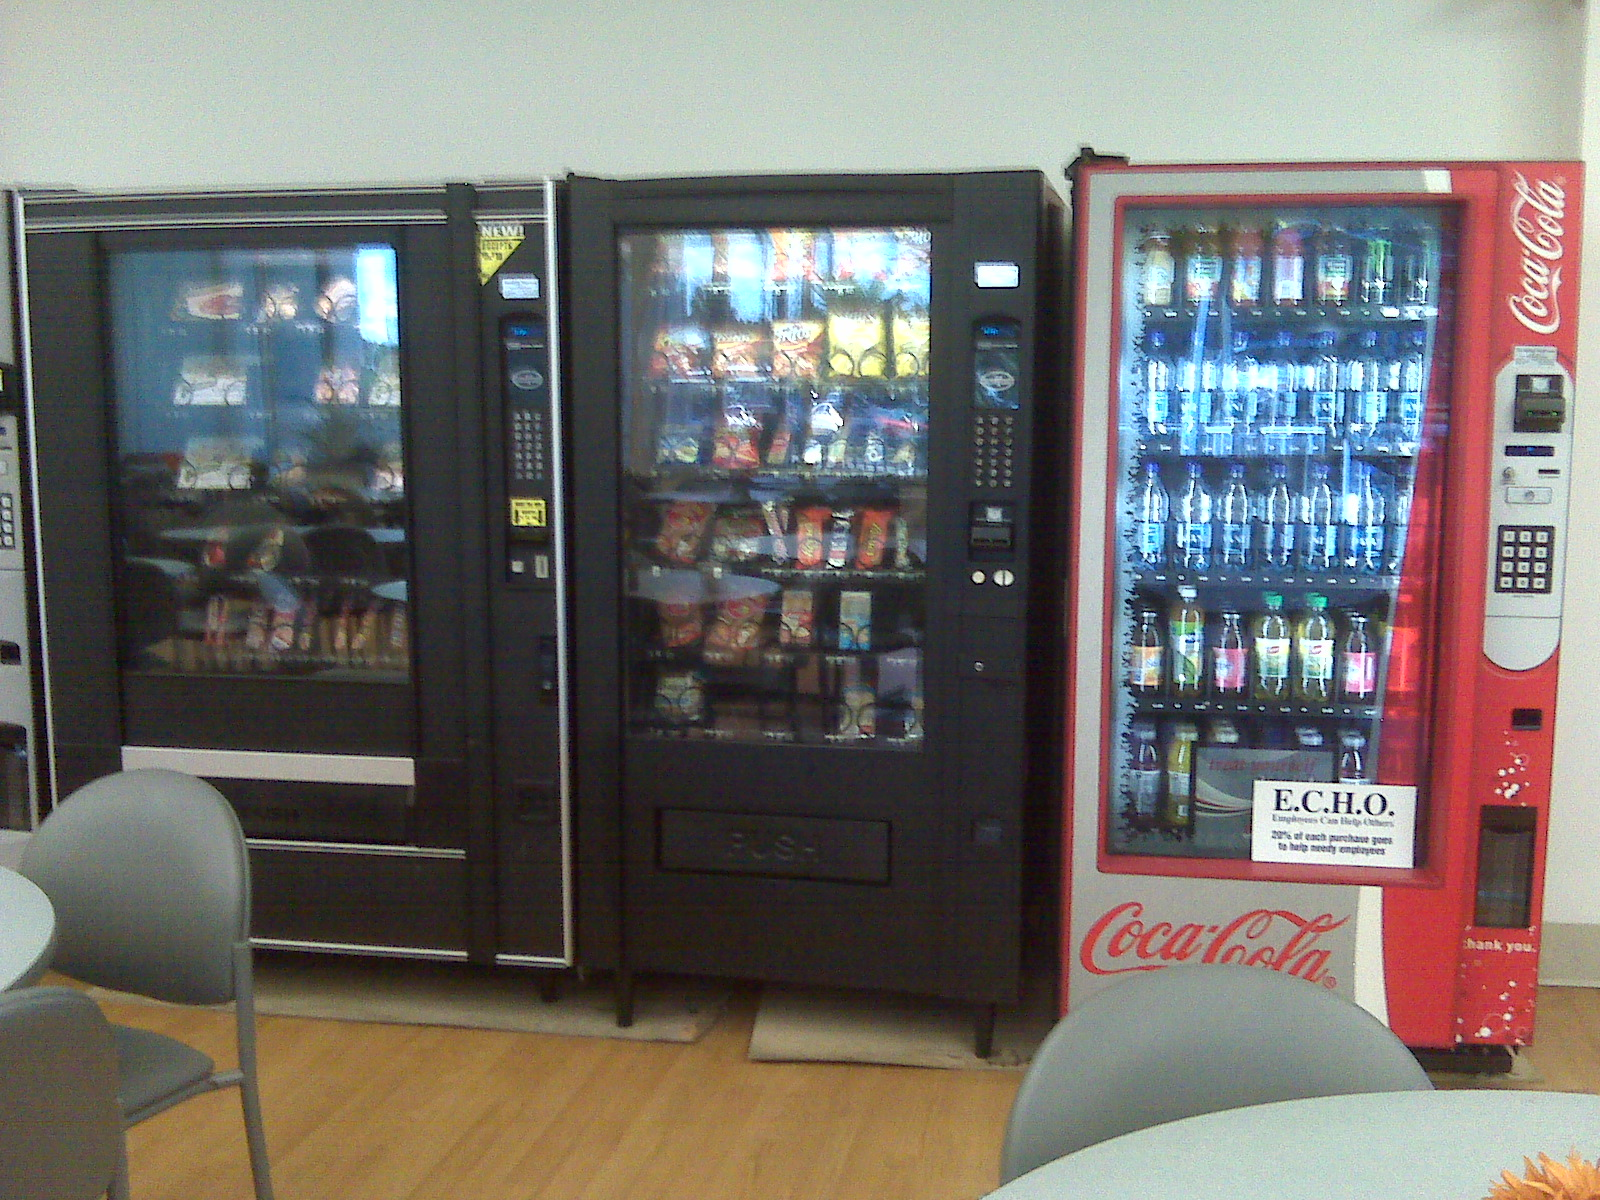 File:Vending machines at hospital.jpg - Wikimedia Commons